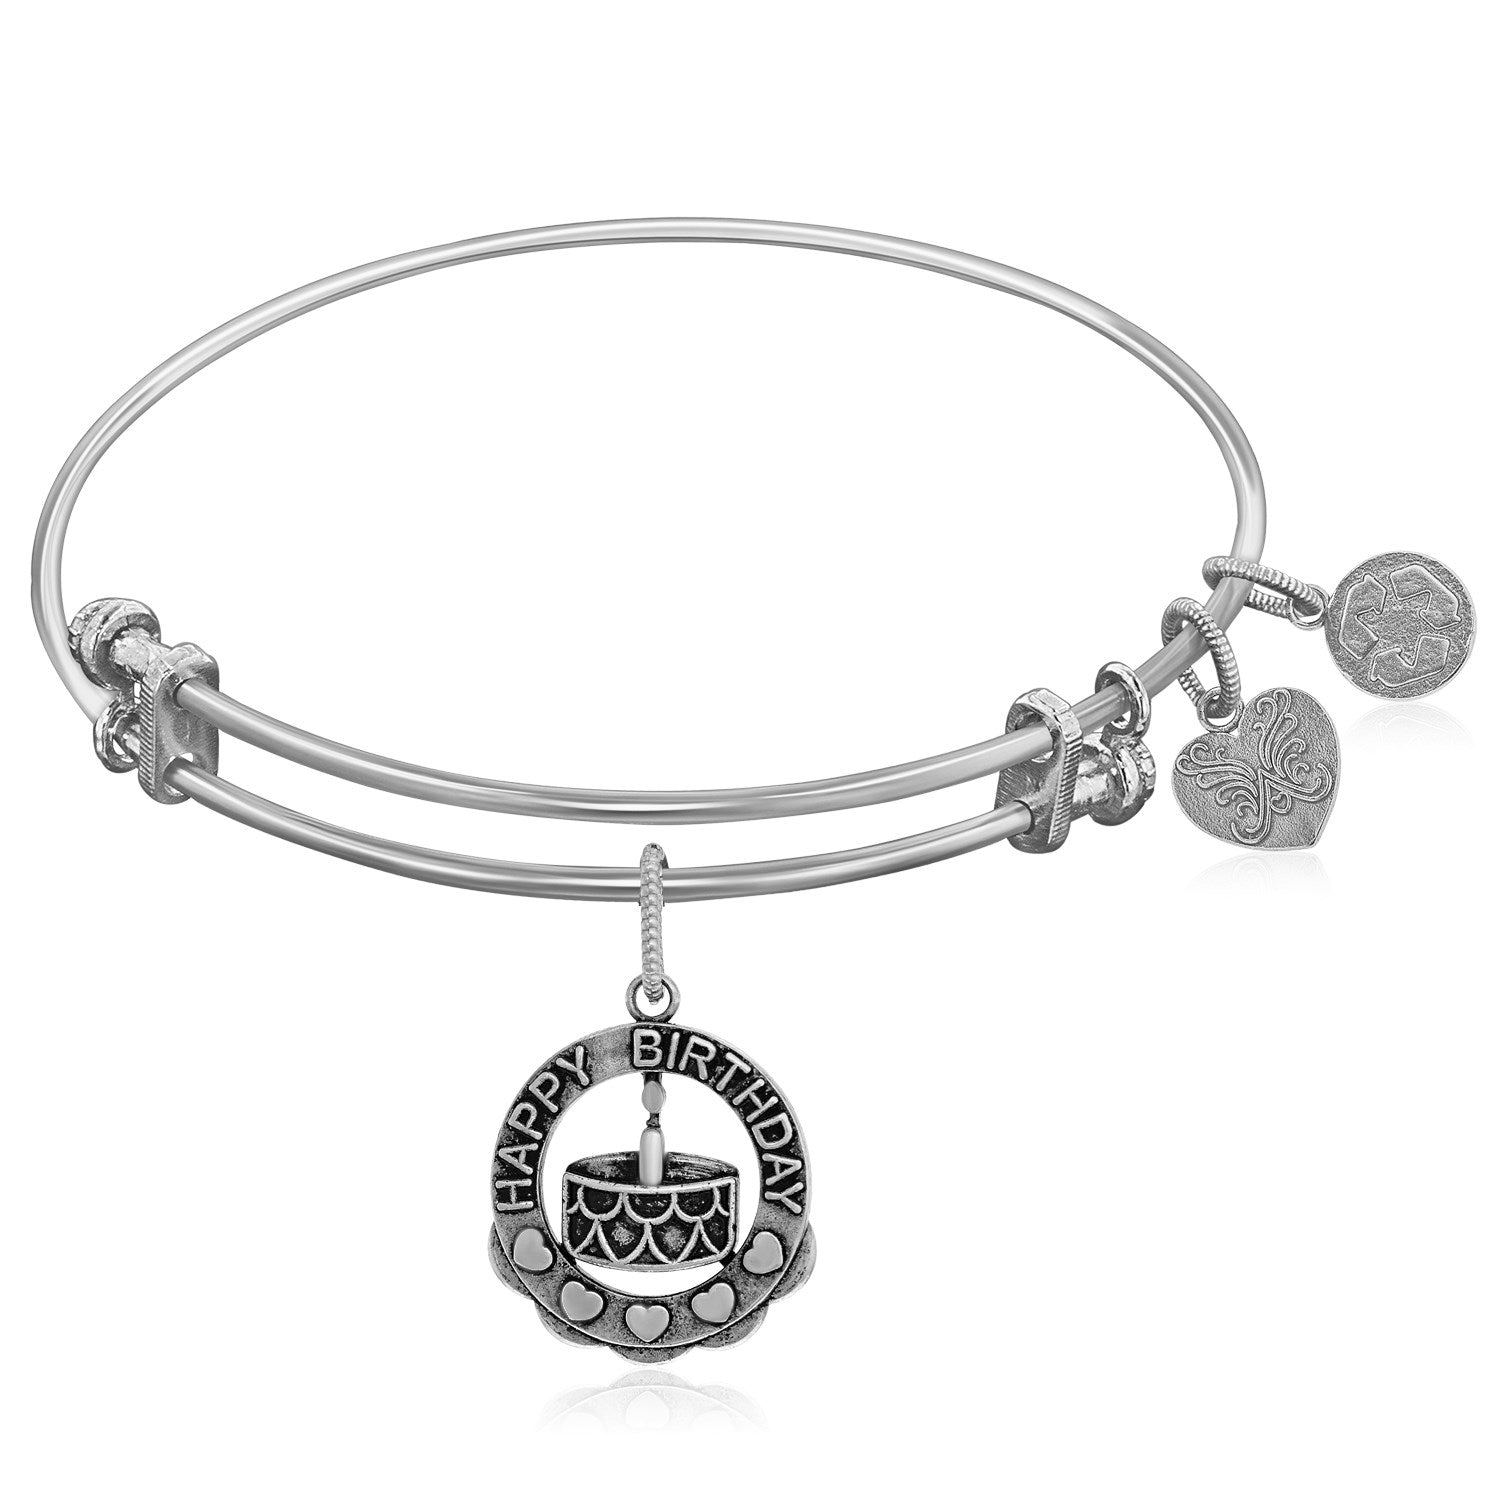 Expandable White Tone Brass Bangle with Happy Birthday Symbol